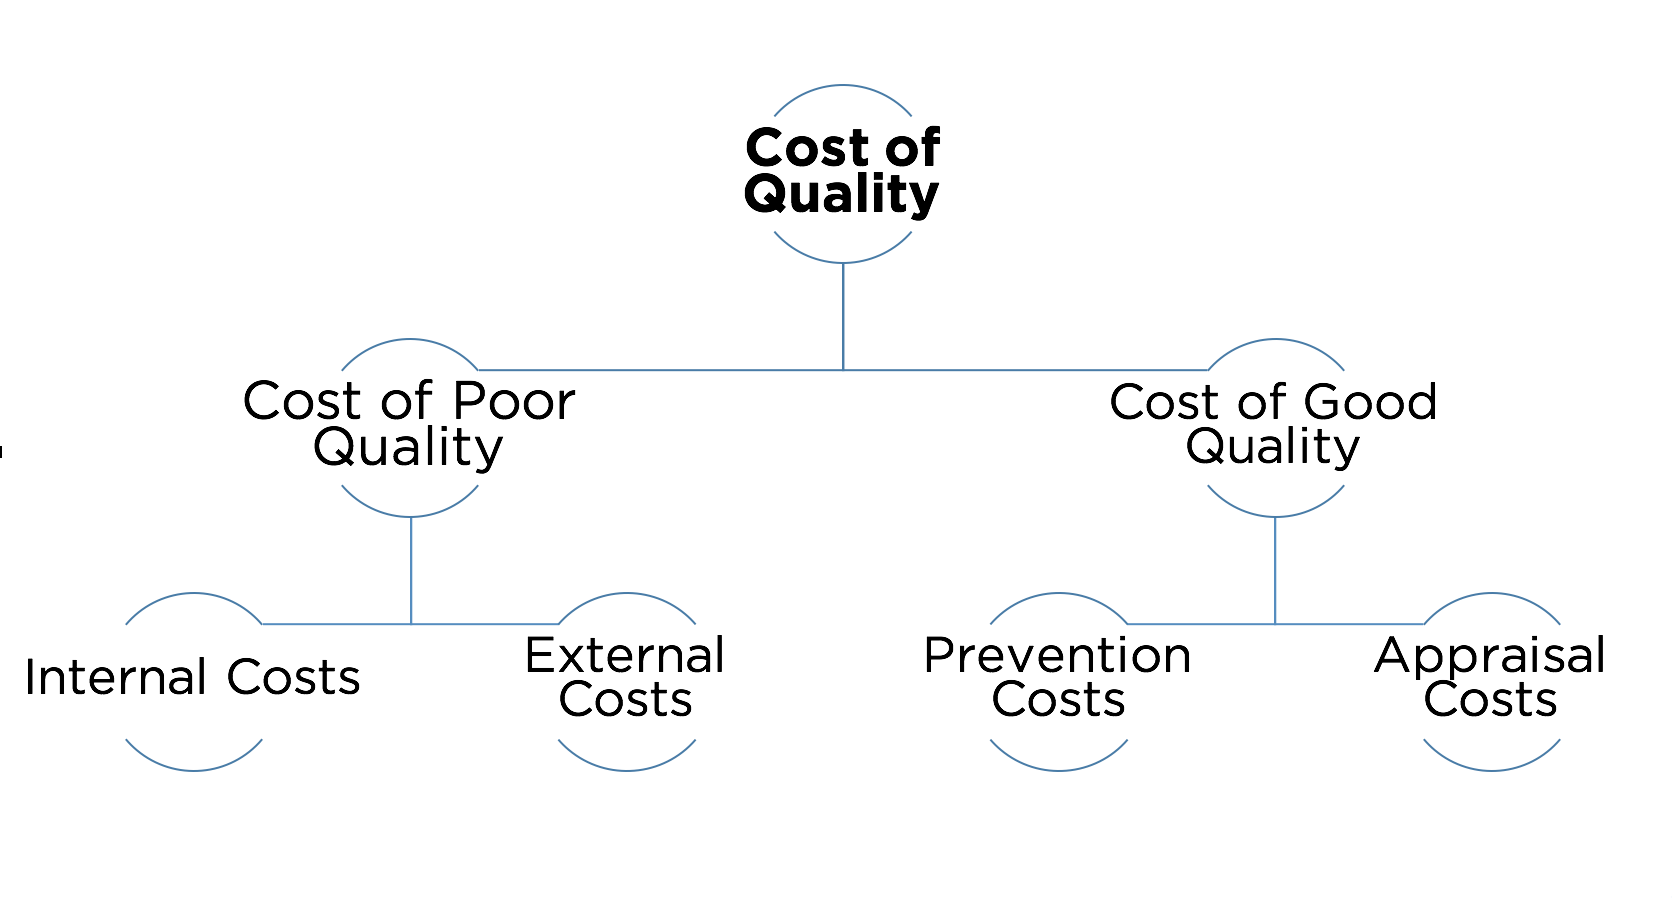 Cost of Quality is divided into cost fo poor quality and cost of good quality